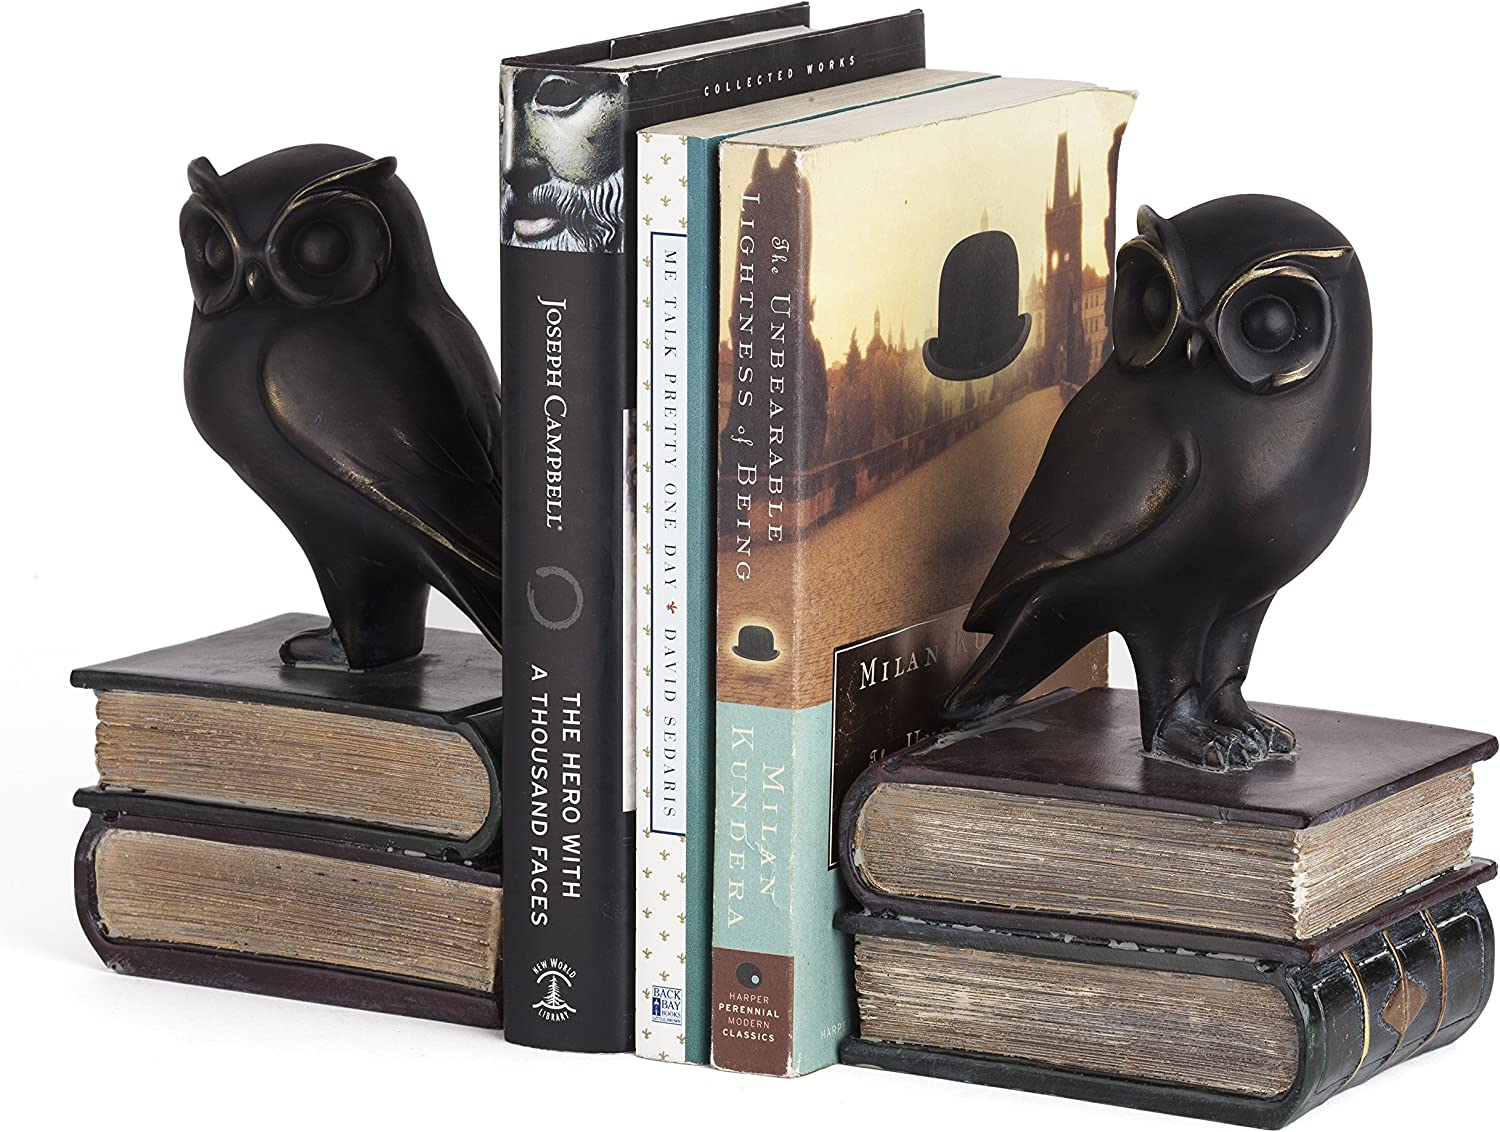 Danya B. Owl Bookends Decorative Rustic Bookshelf Decor - Owls Bookend Set for Heavy Books - Bronze Finish